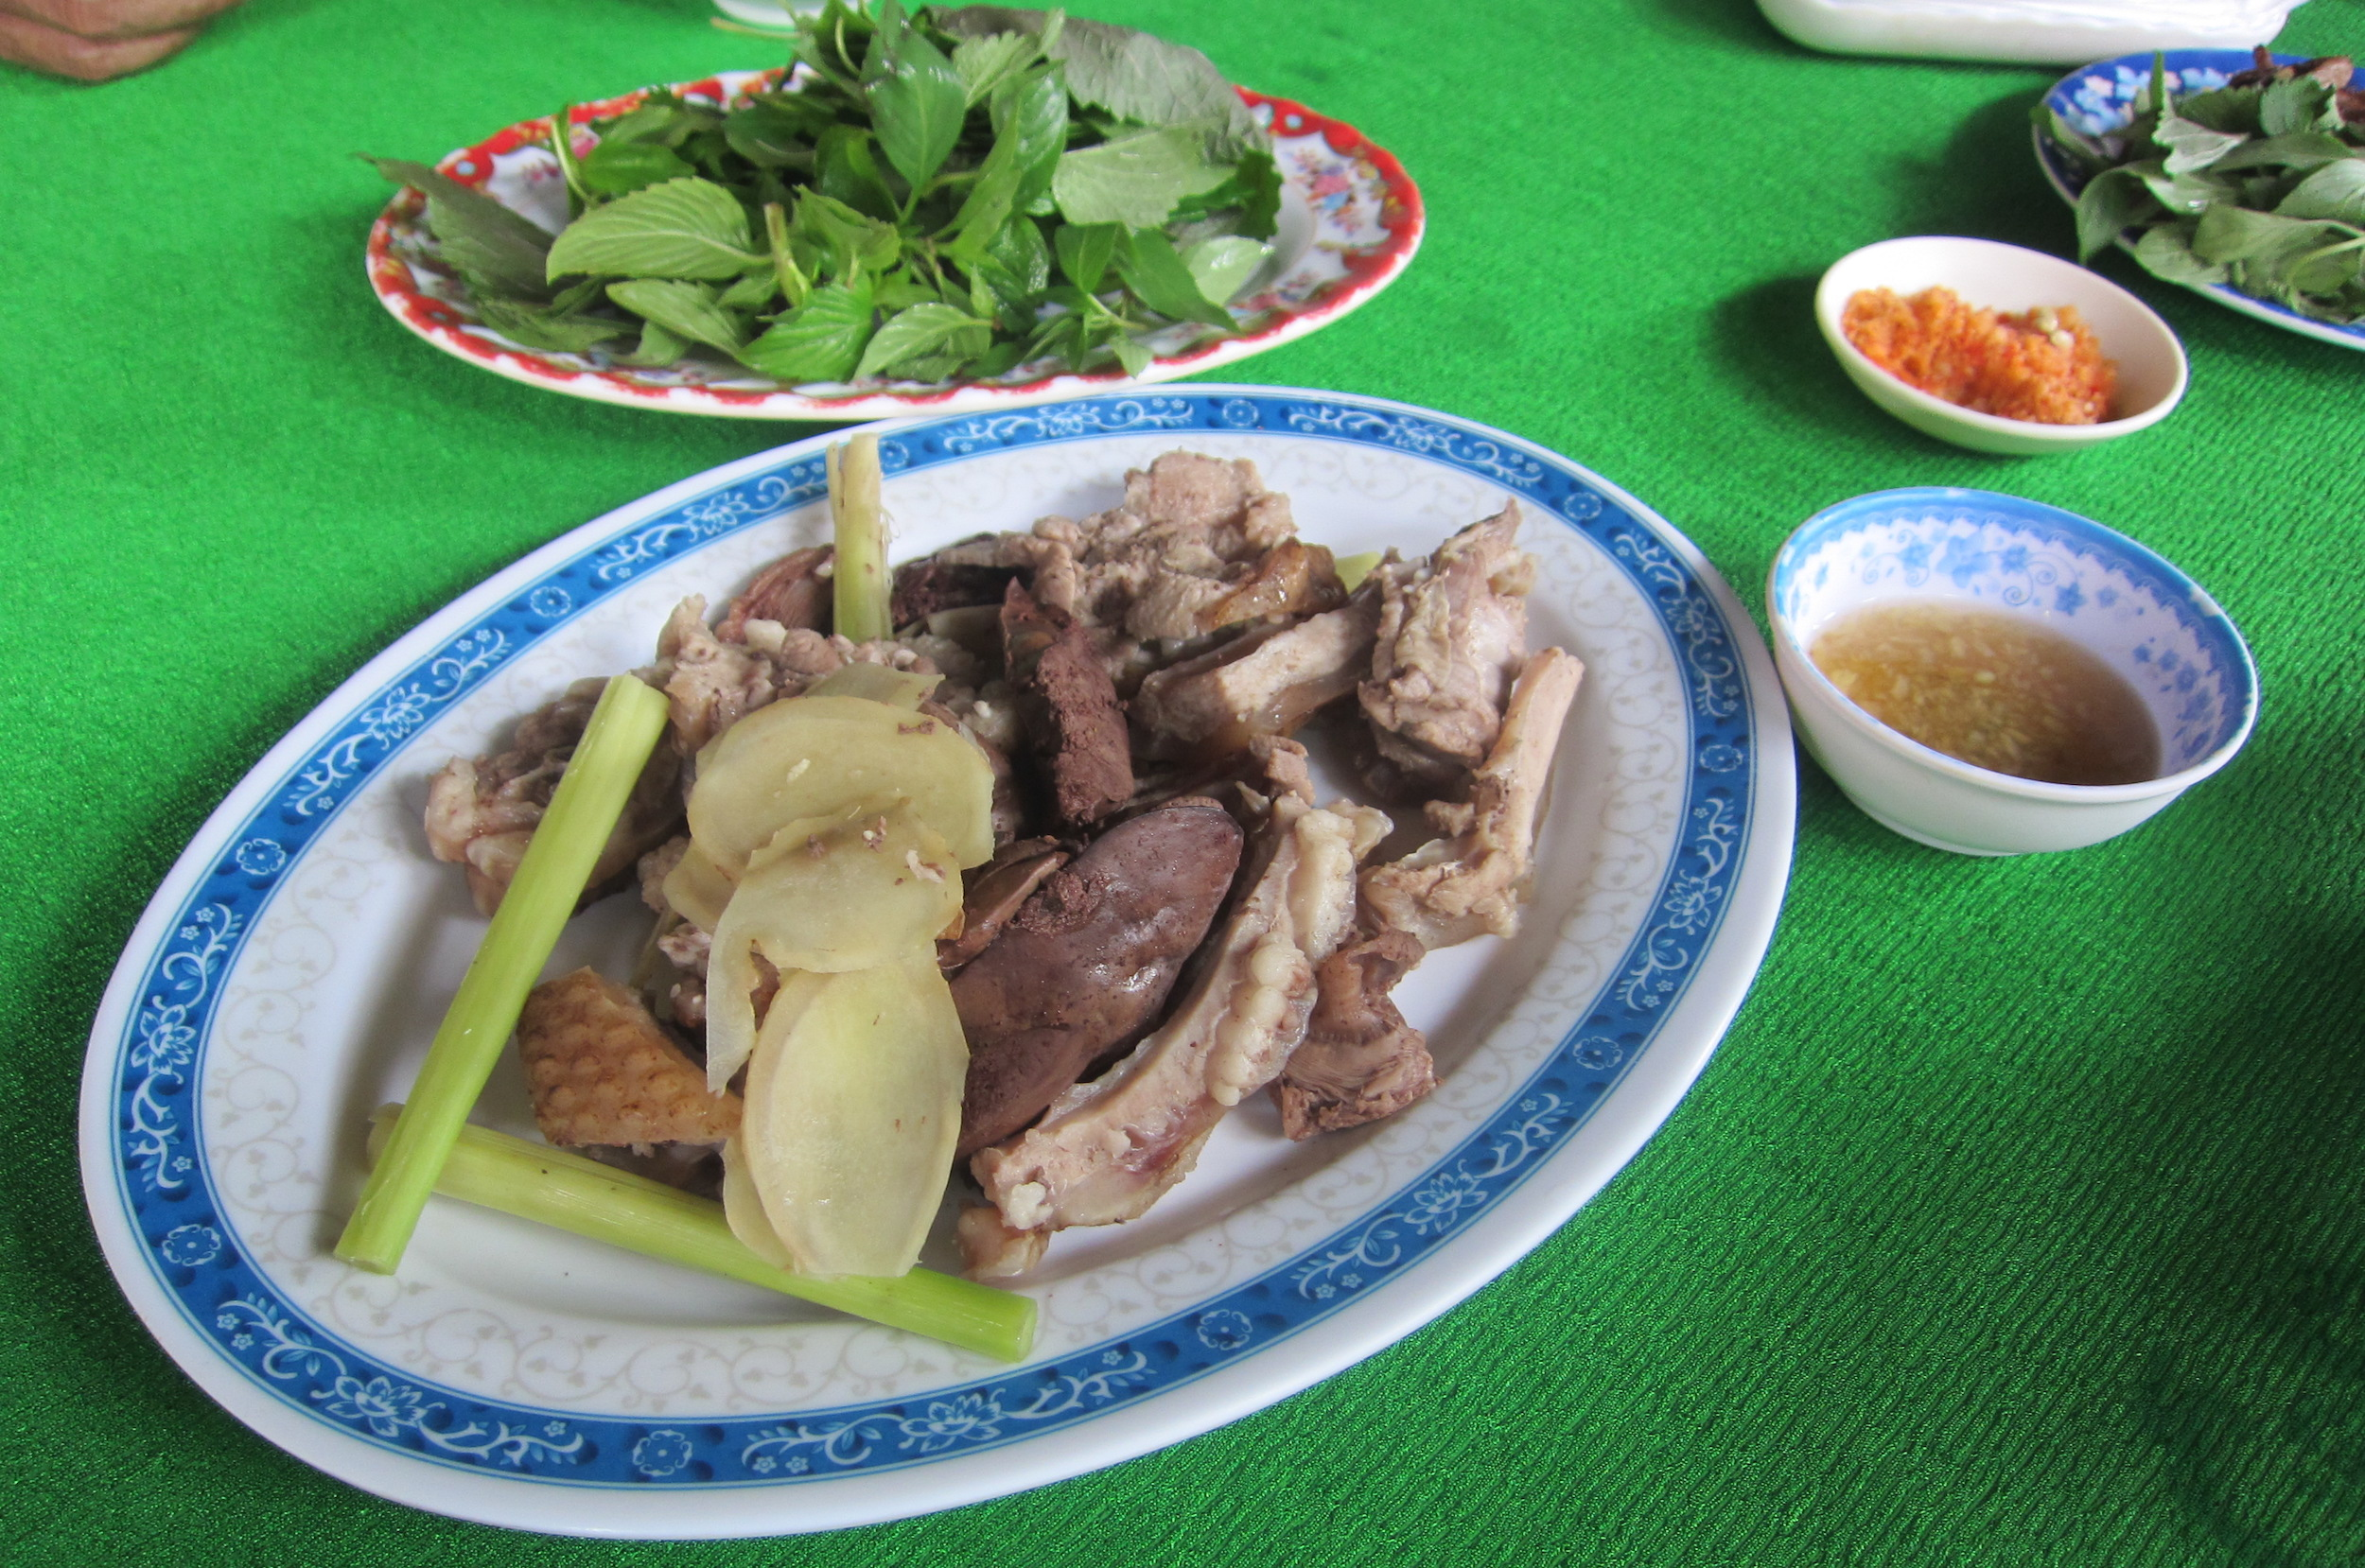 Food and hospitality in Vietnam, with a side of porcupine | The GroundTruth Project